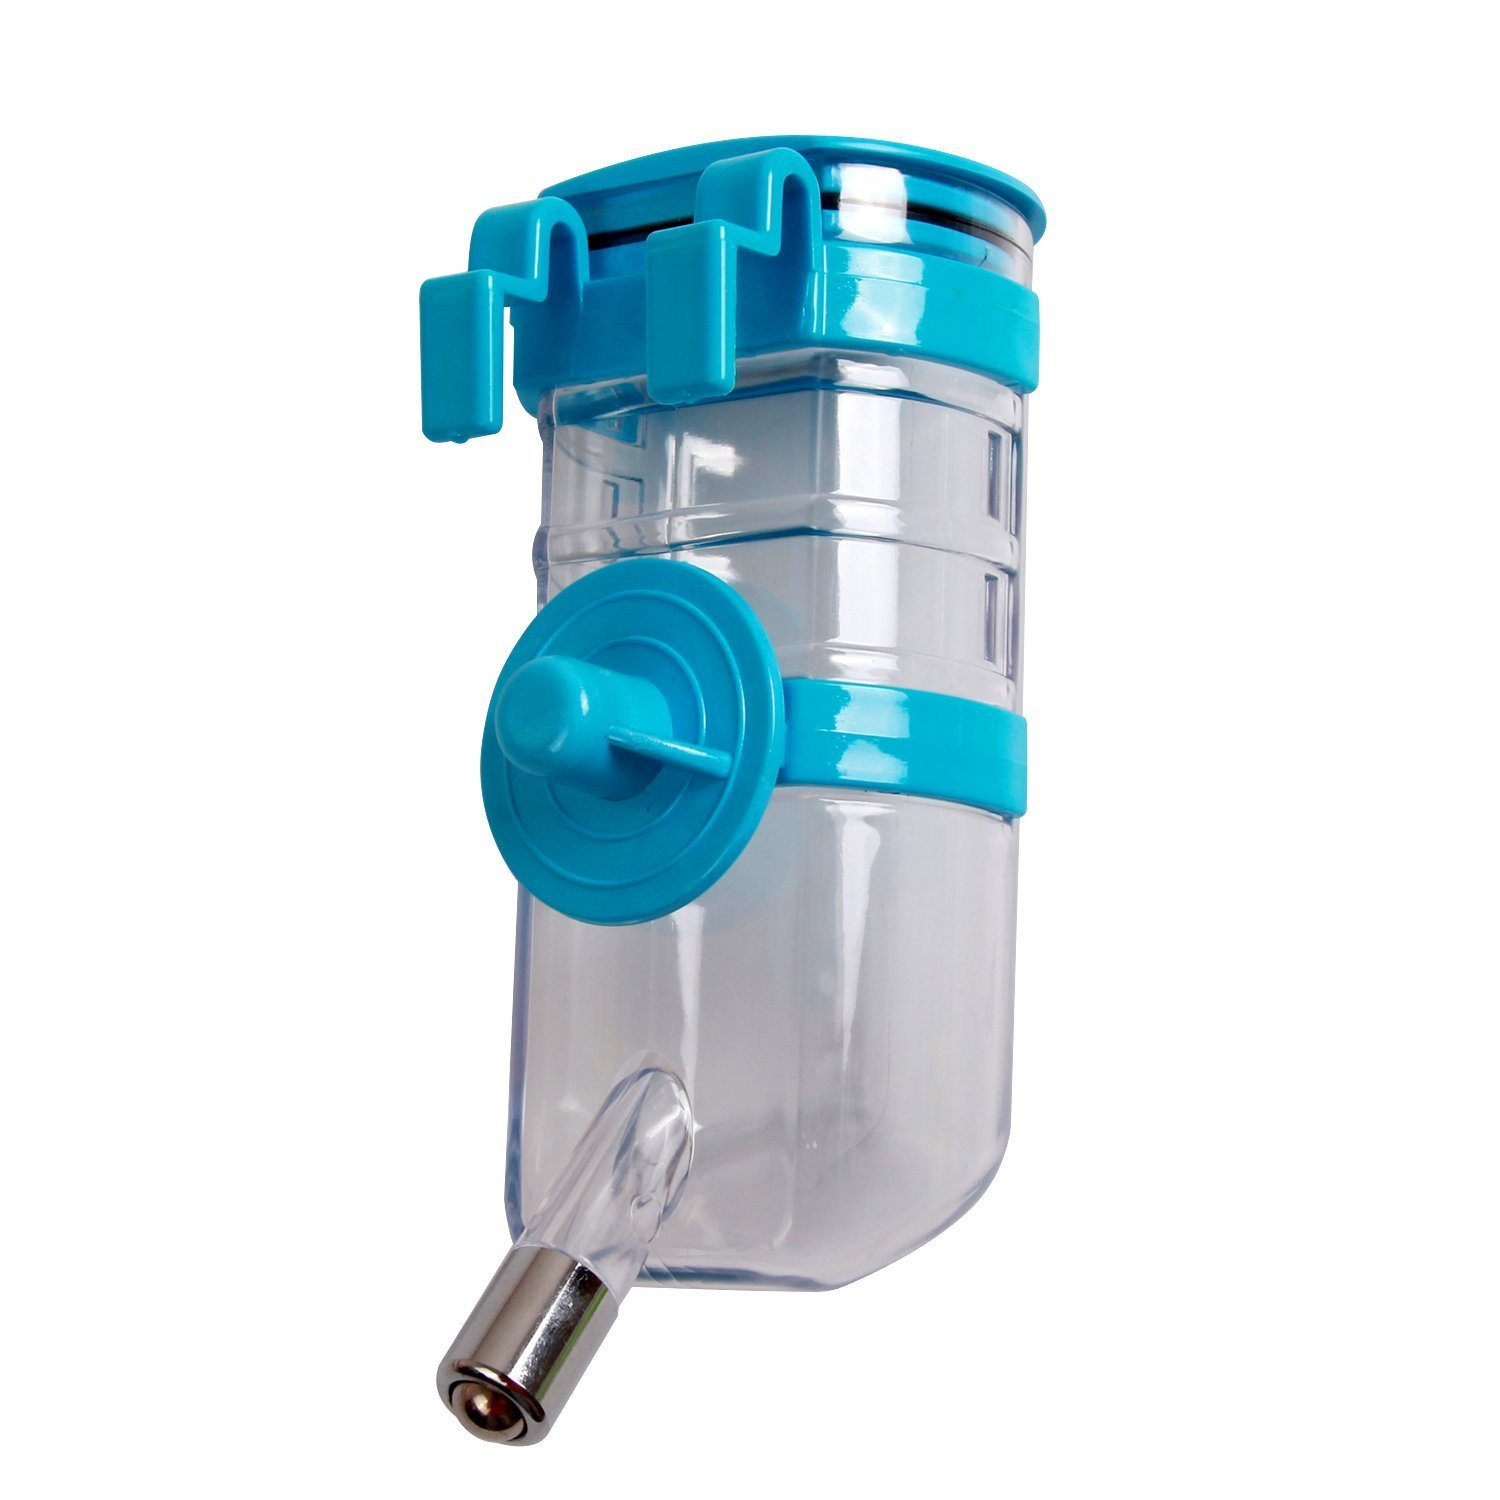 BXT Automatic Pet Water Bottle for Dogs Cats Rabbits Ferrets, 13.5 oz Capacity Rear-filling Water Feeder Hanging No-Drip Water Drinking Holder- Keep Your Pet Hydrated (Blue)